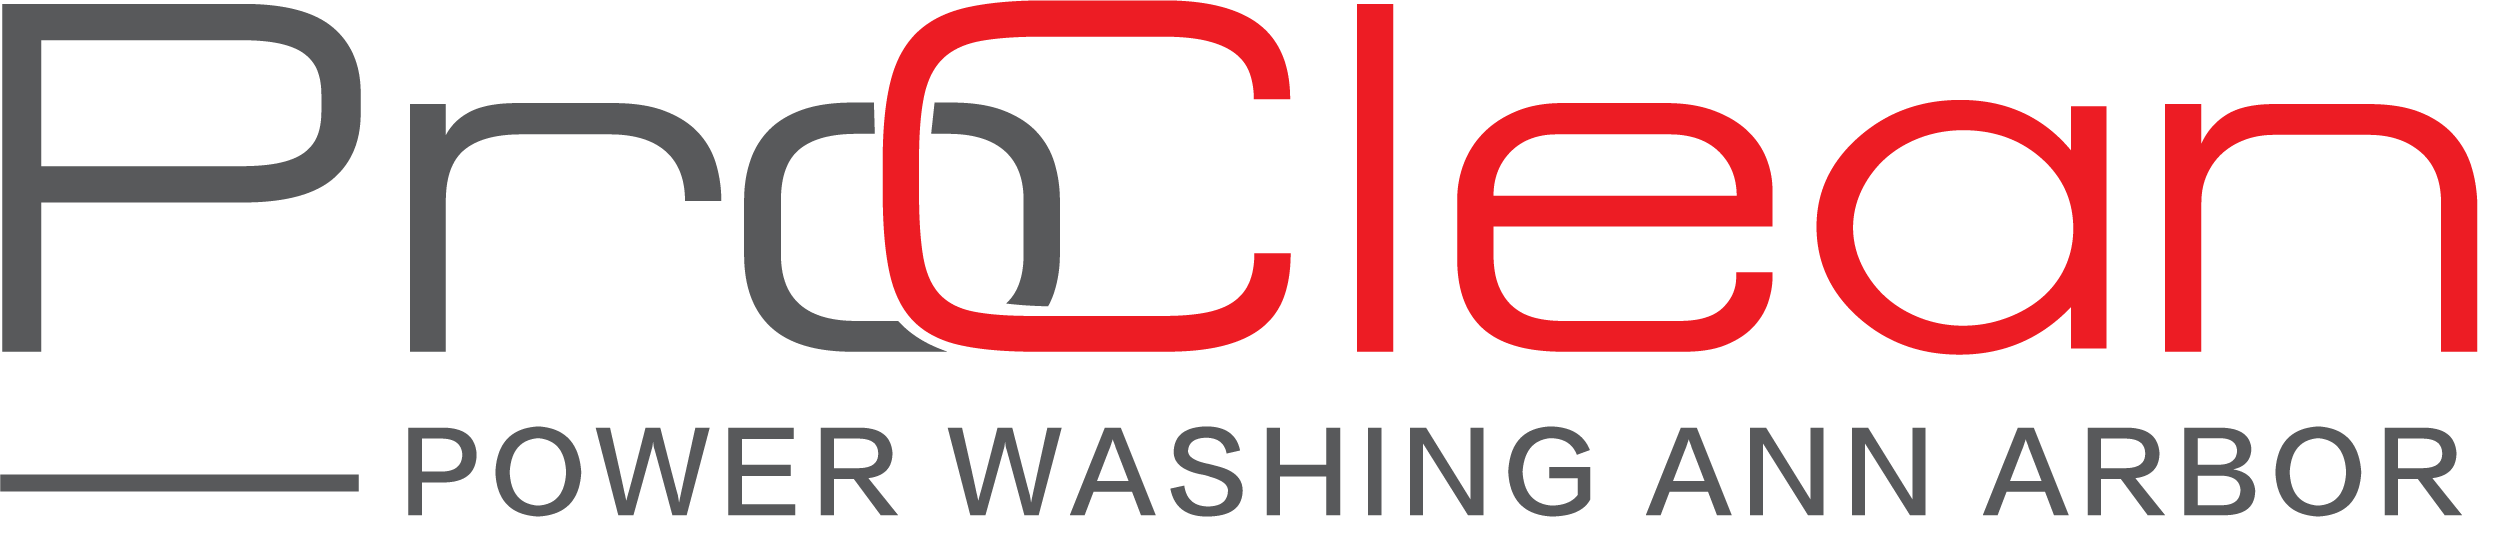 ProClean Power Washing Ann Arbor Branded Logo